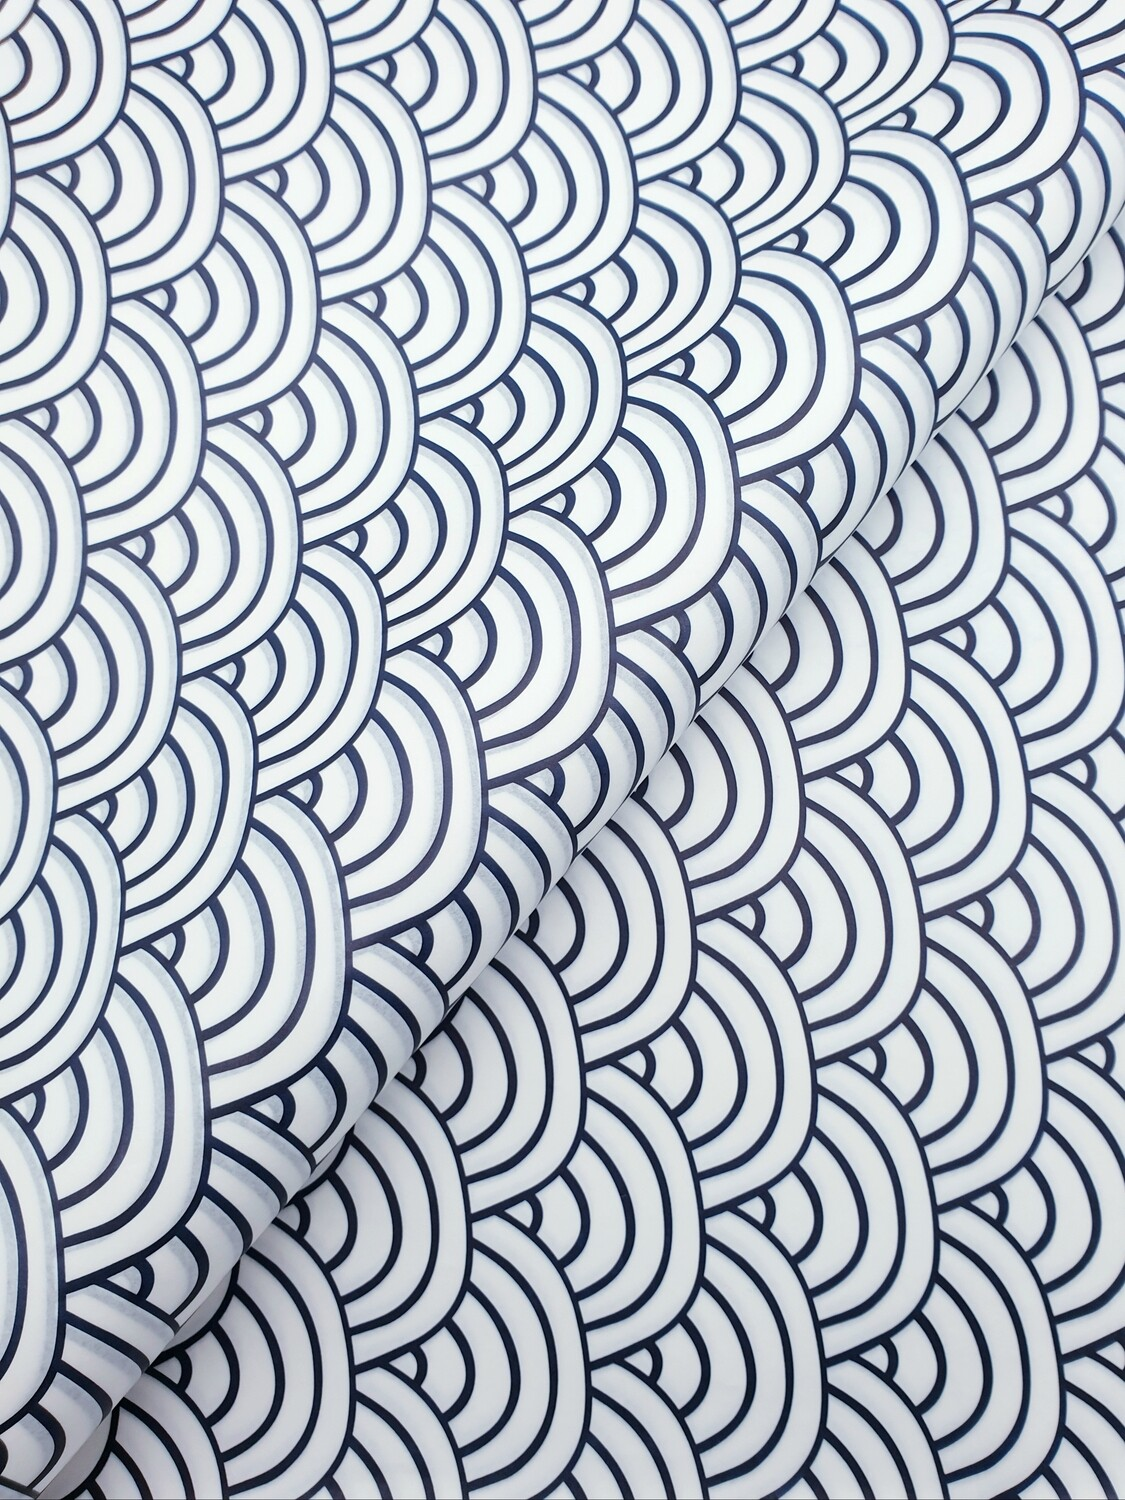 Tissue Paper -Waves - Navy On White (Qty 25)